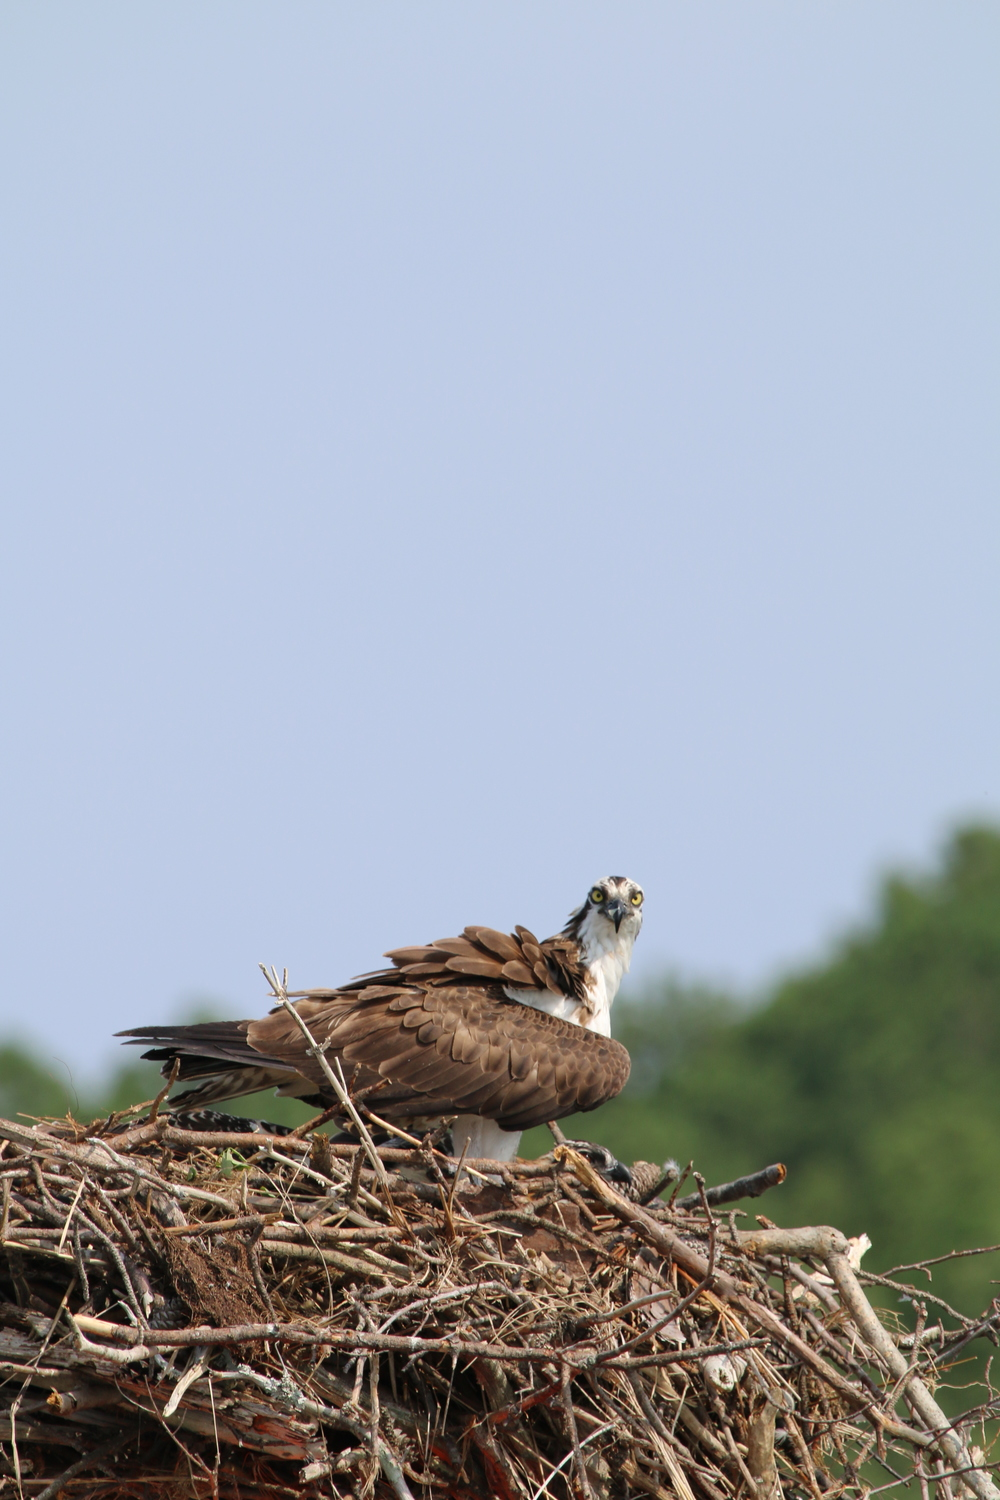 An osprey ( Pandion haliaetus ) sitting atop its nest on one of the channel markers in the Little Wicomico River. During our 2015 field season, we were greeted everyday by the side to side head-bob of this beautiful guy. The pair had two chicks. If you look closely, you can see the head of one. Photo by Eric M. Patterson